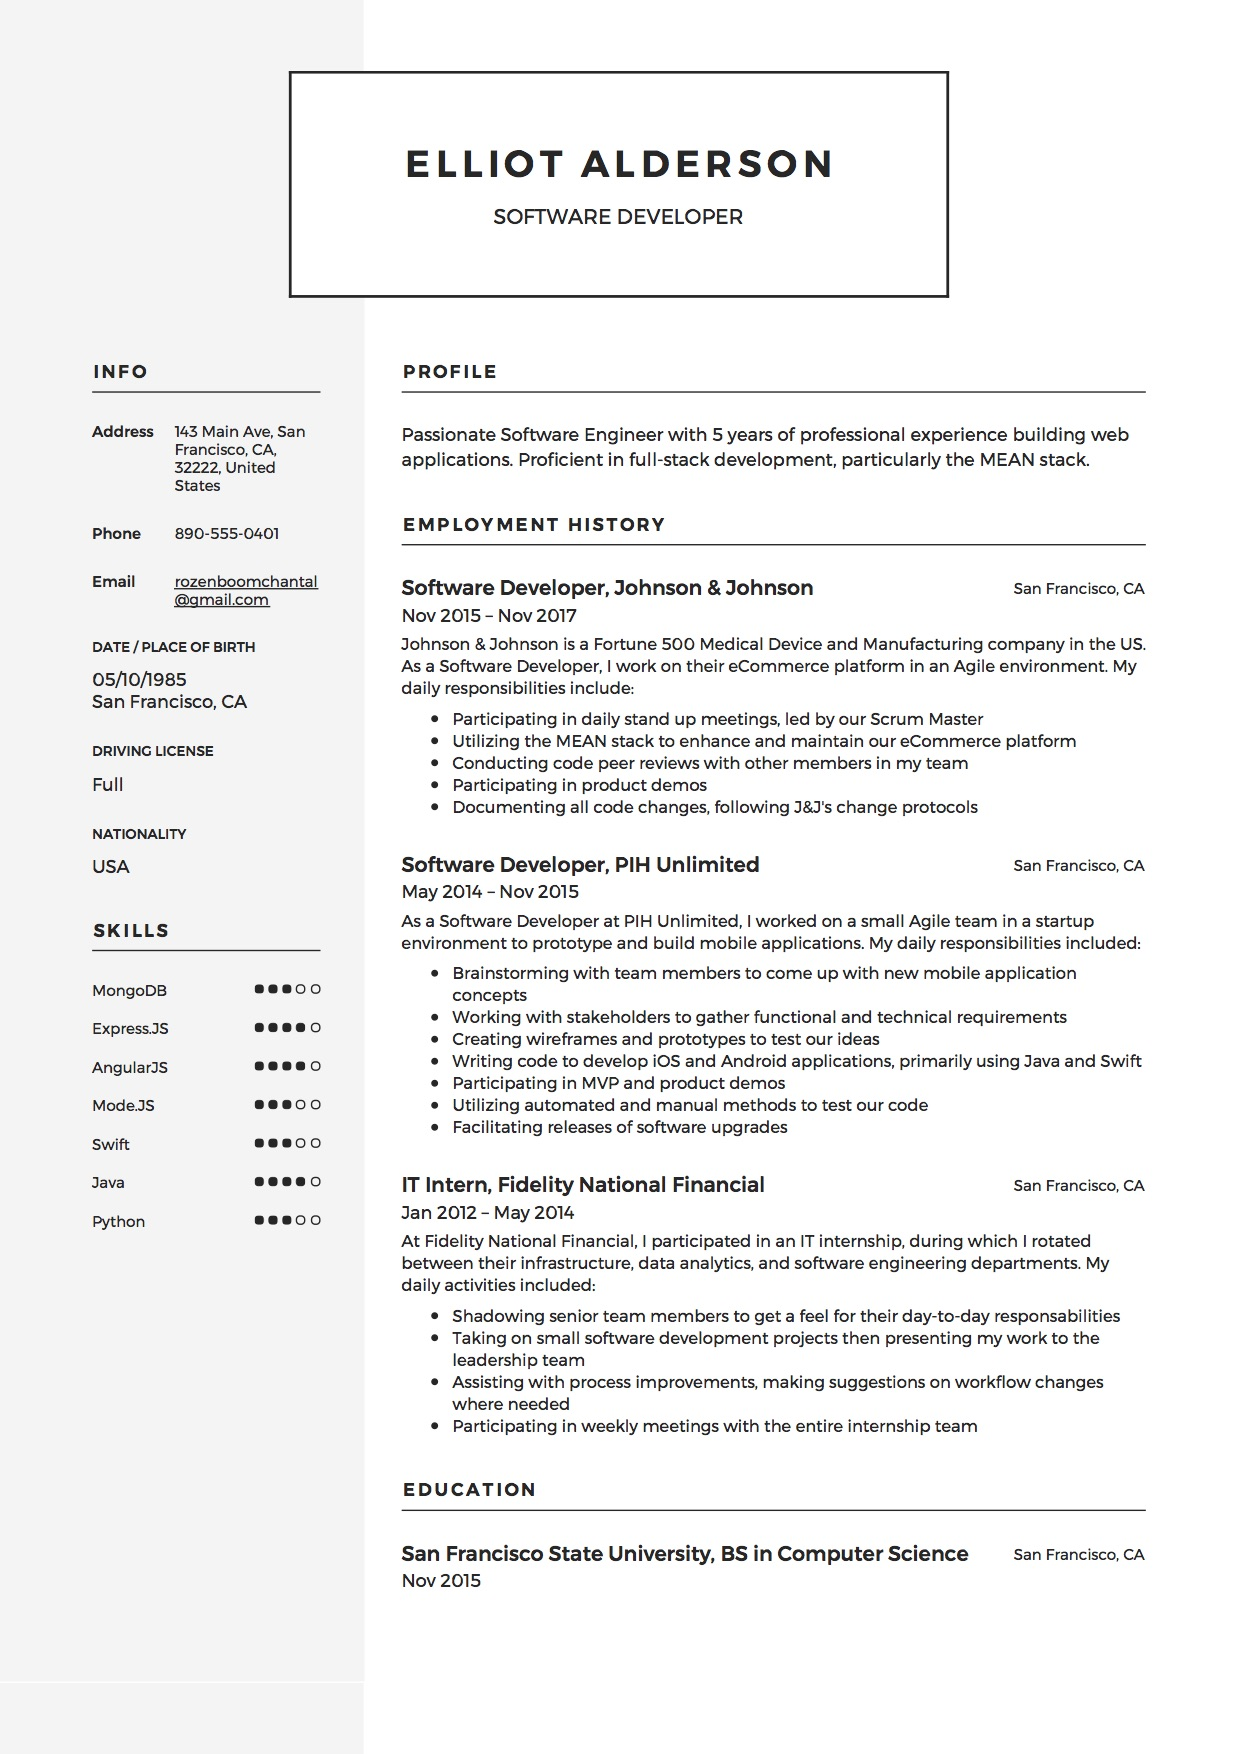 Software Developer Resume(4)